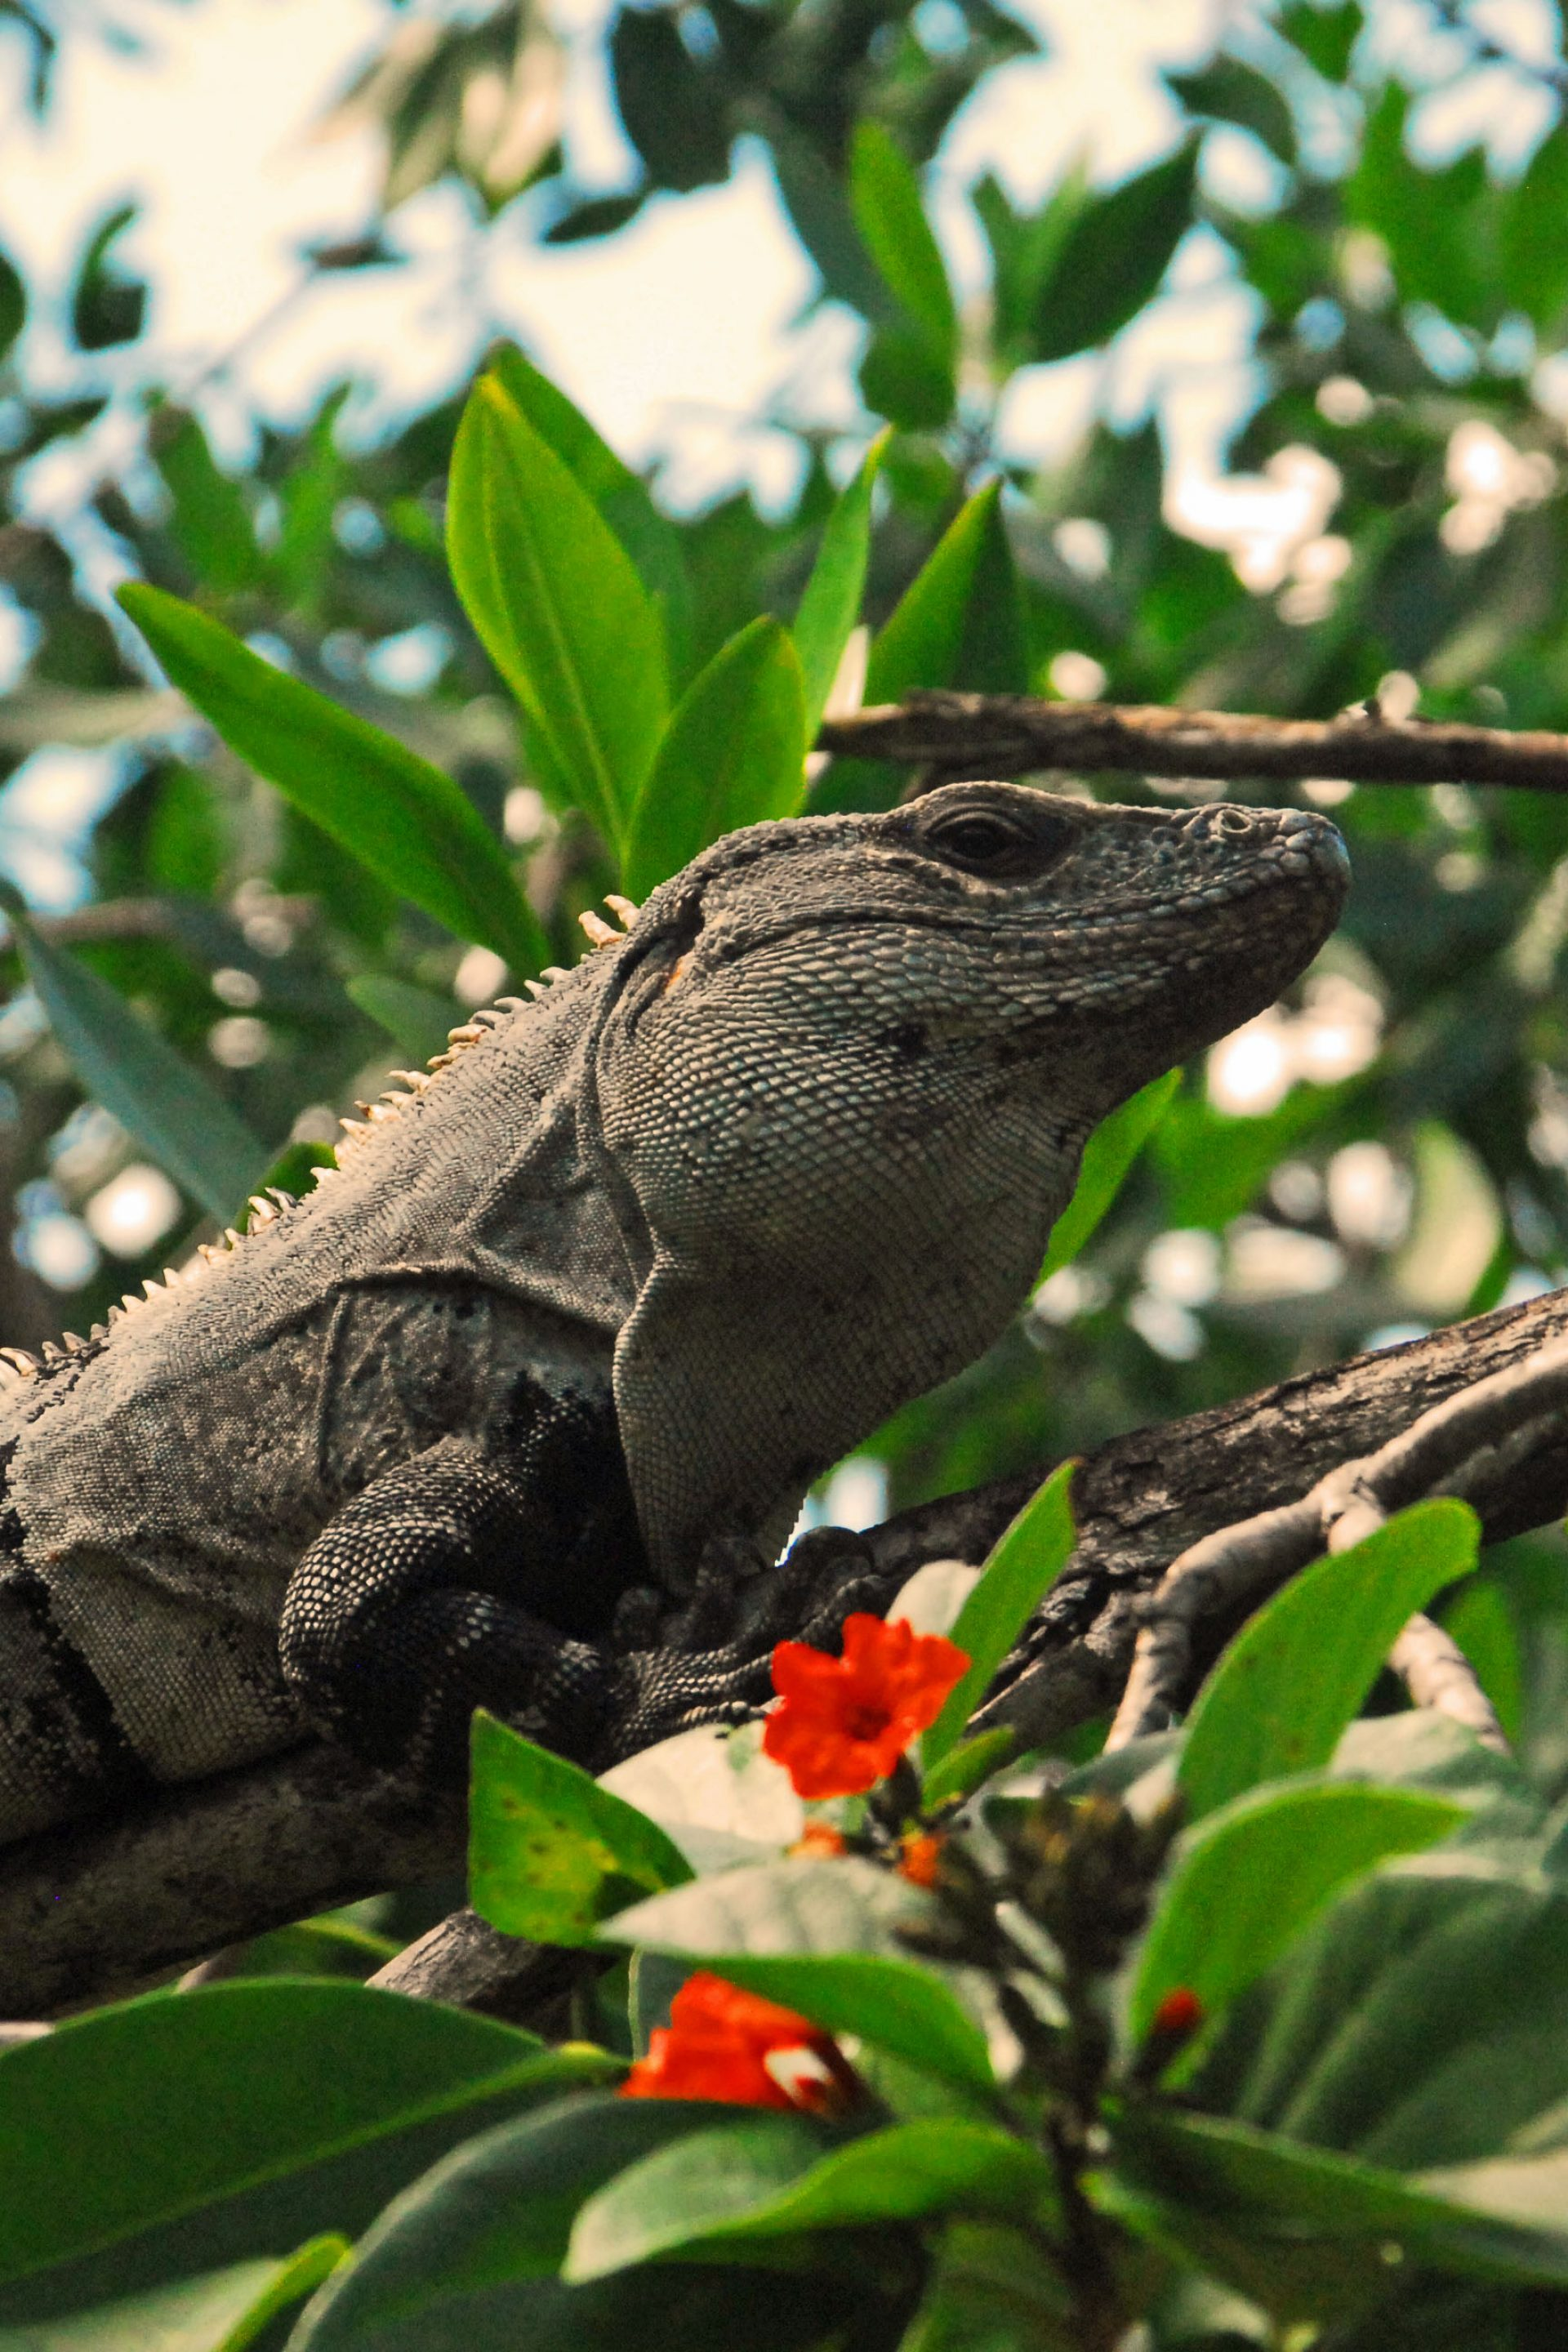 Mayan Iguana Jungle Reptiles in Mexico